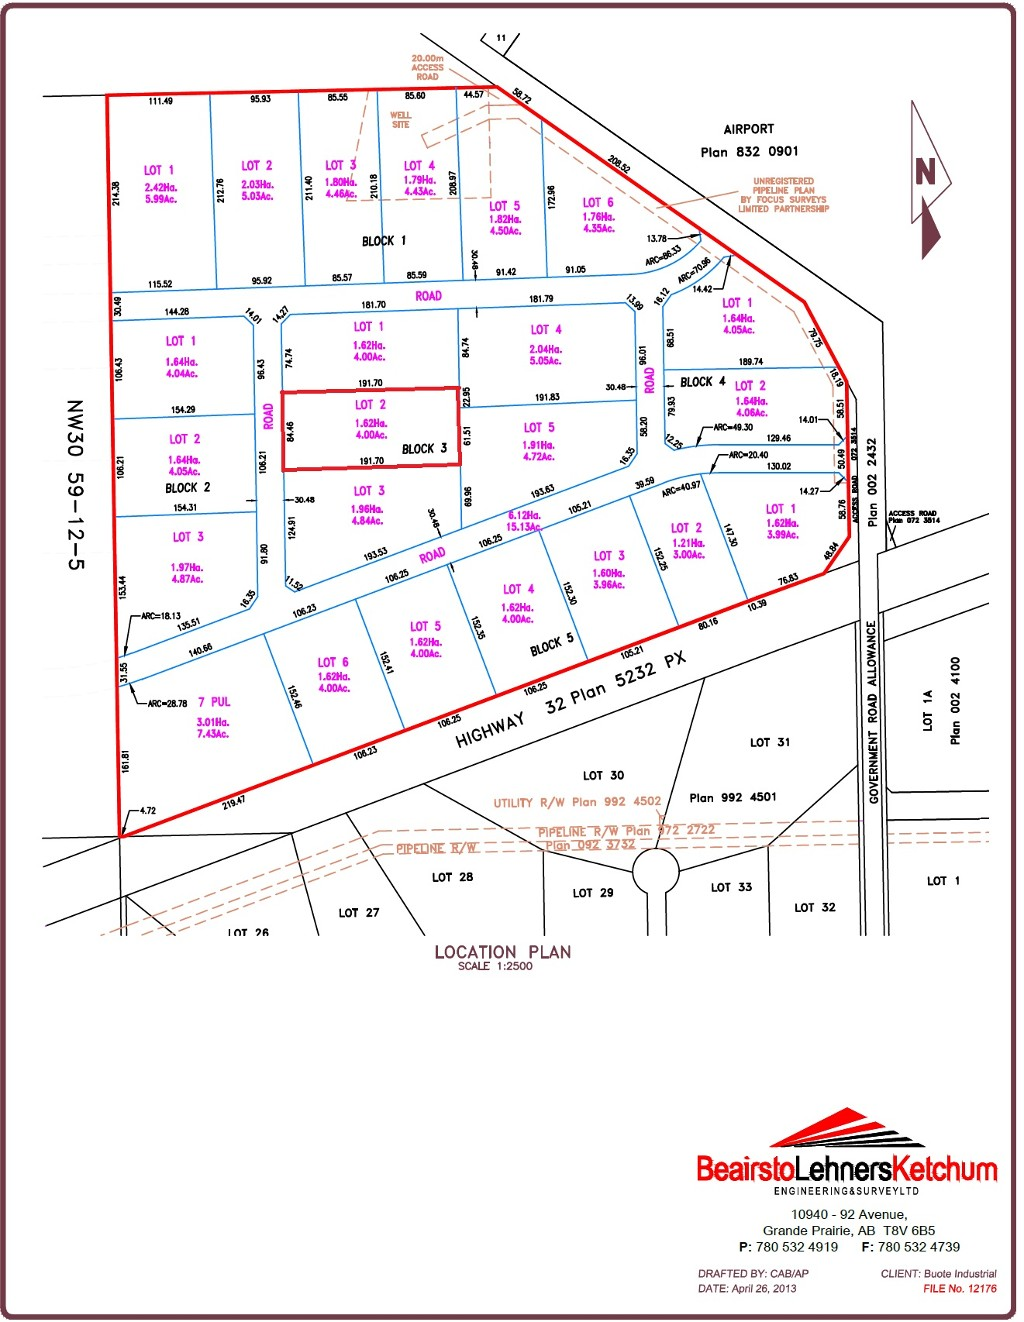 Main Photo: Lot 2 Highway 32 S. in Whitecourt Rural: Vacant Lot for sale : MLS® # 38787